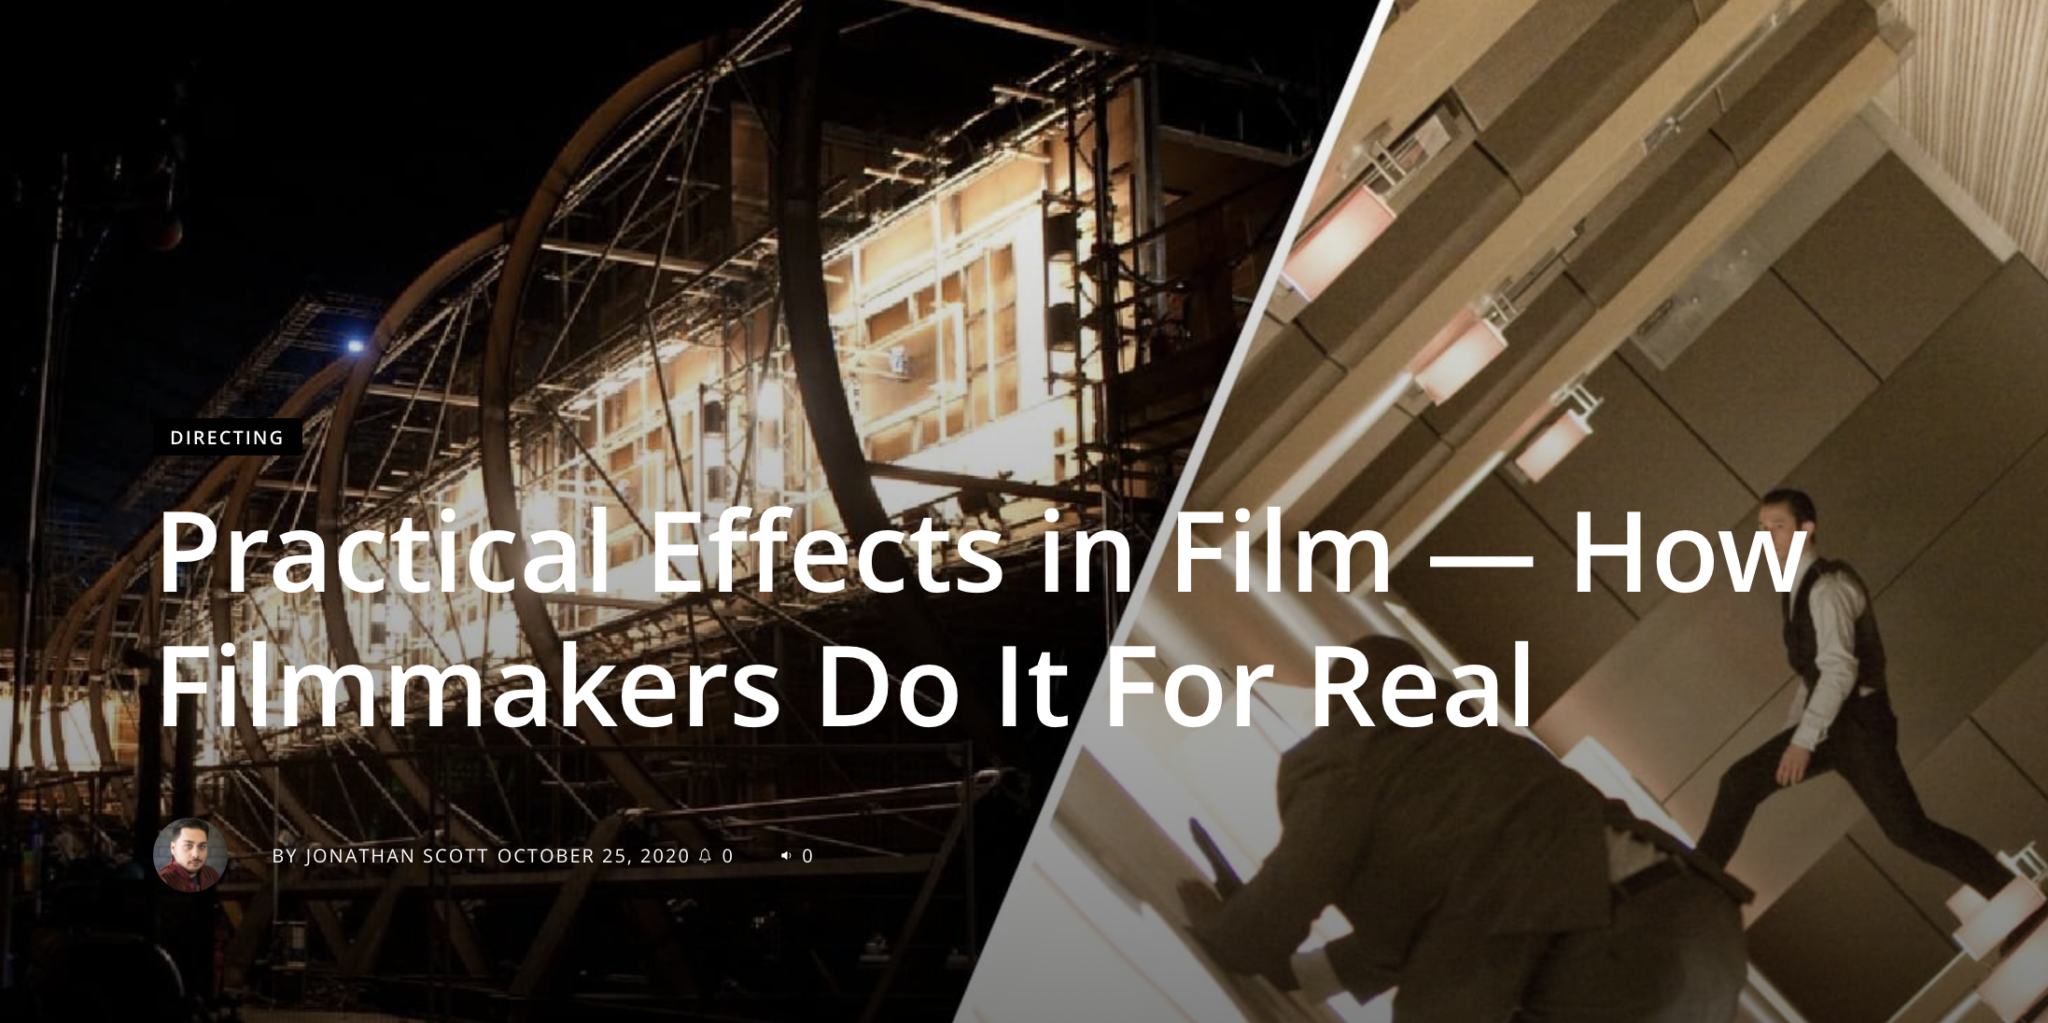 Practical Effects in Film - thescriptblog.com